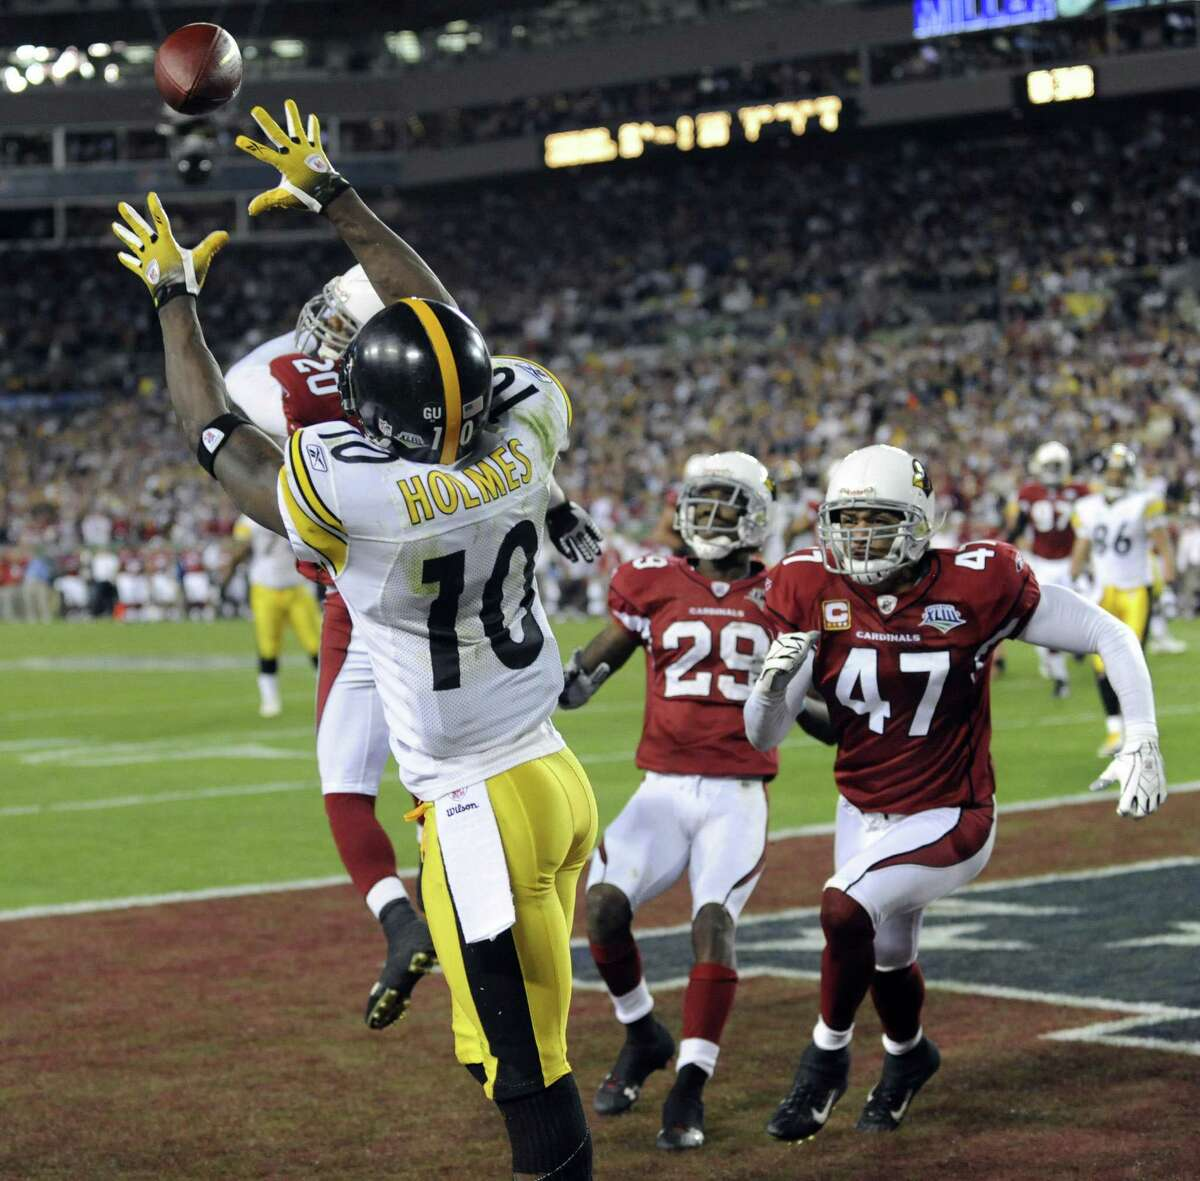 Santonio Holmes of the Pittsburgh Steelers catches a seven-yard touchdown pass with 35 seconds remaining for a 27-23 victory over the Arizona Cardinals in Super Bowl XLIII for a record sixth Super Bowl title on February 1, 2009 at Raymond James Stadium in Tampa, Florida. AFP PHOTO / TIMOTHY A. CLARY (Photo credit should read TIMOTHY A. CLARY/AFP/Getty Images)